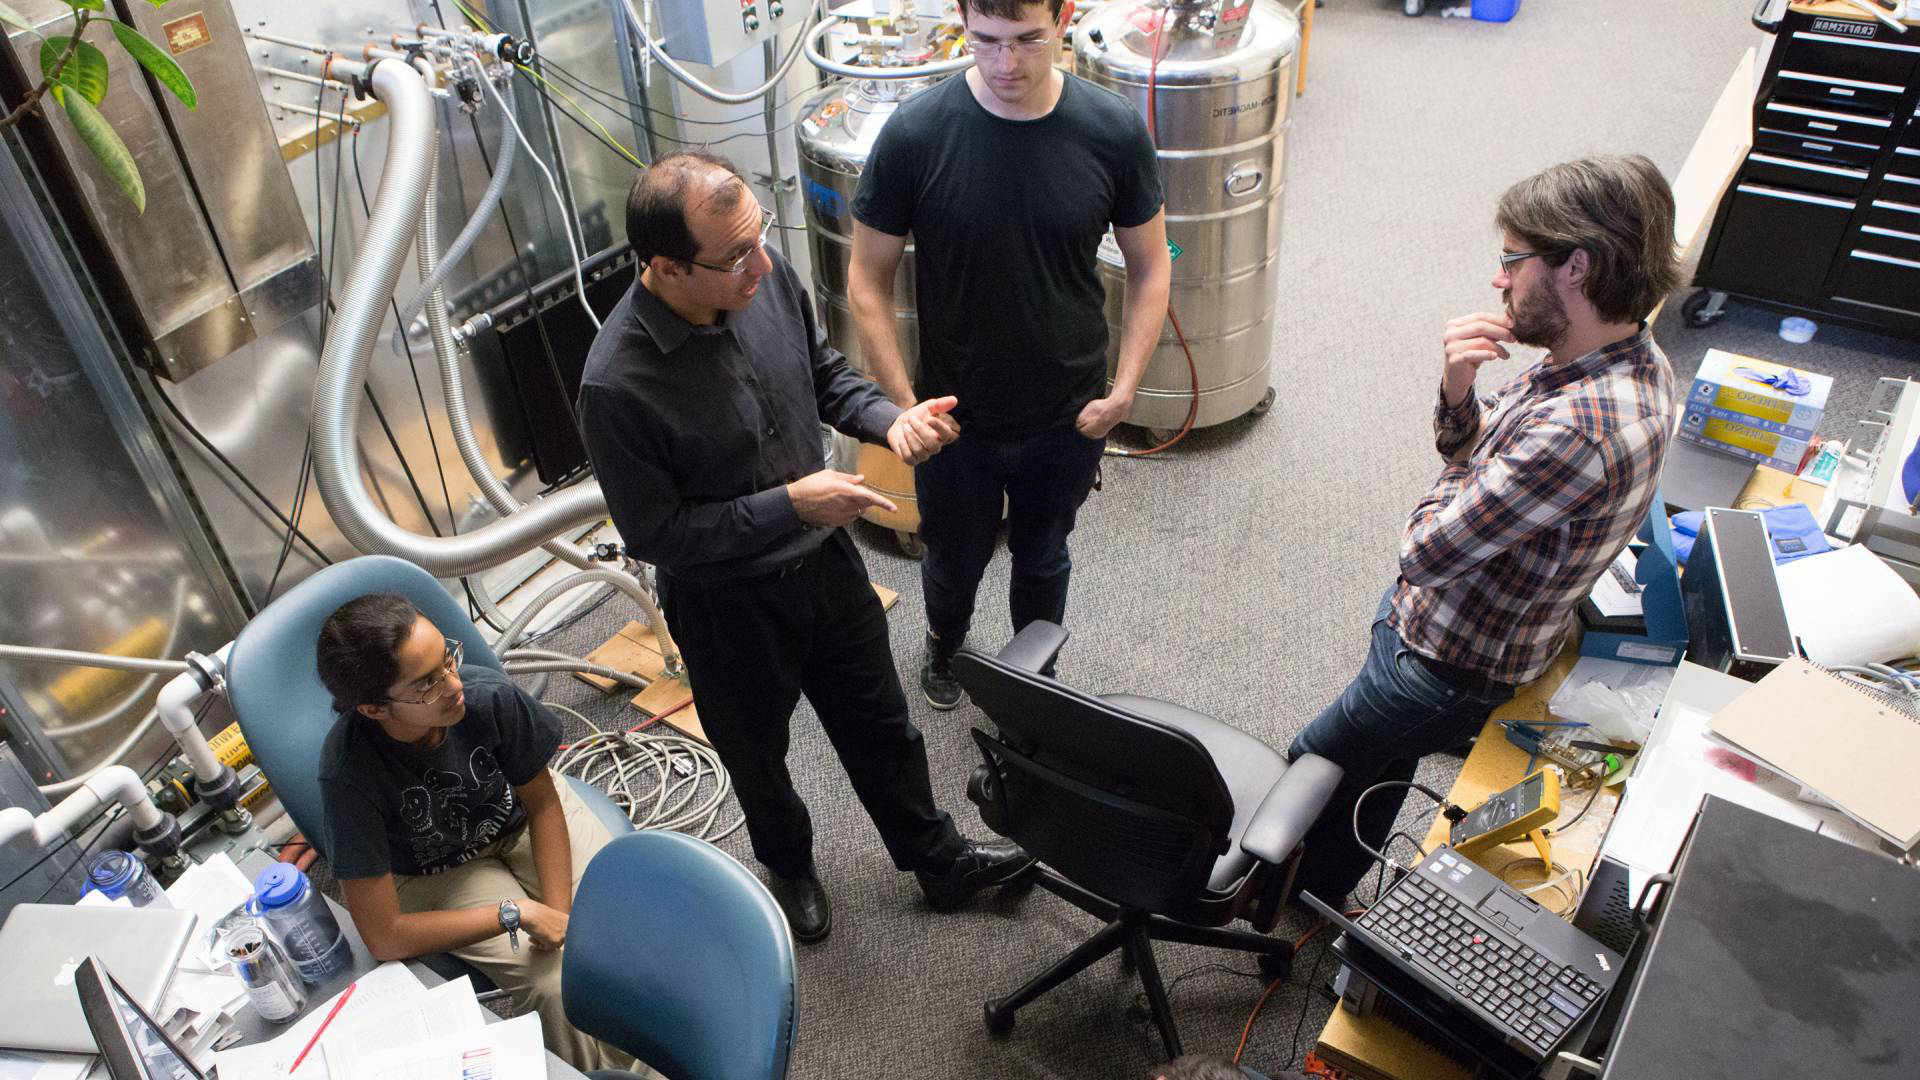 Professor and students confer in a lab.